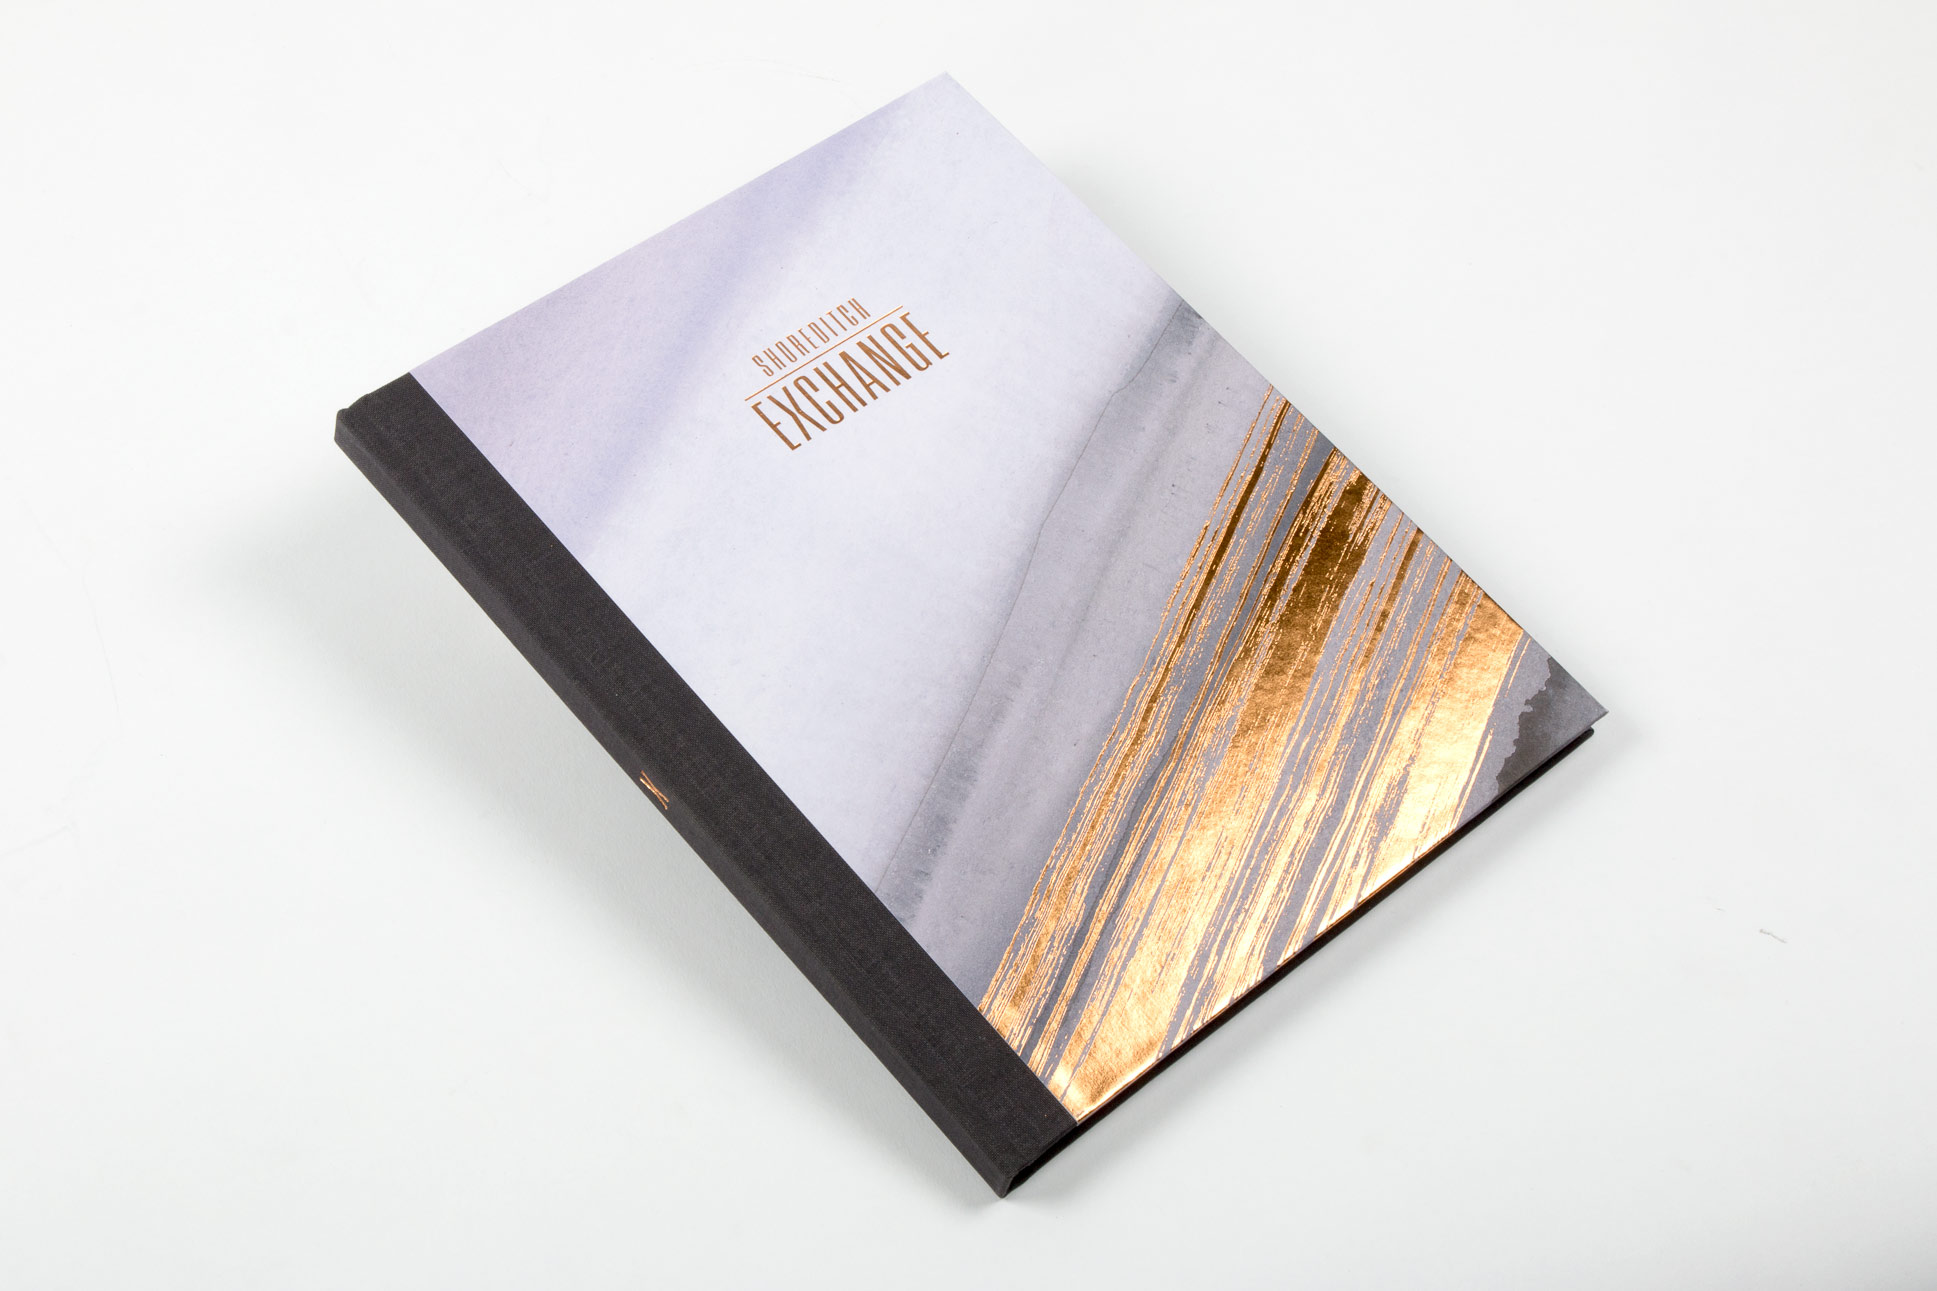 case bound property coffee table book with gold foil